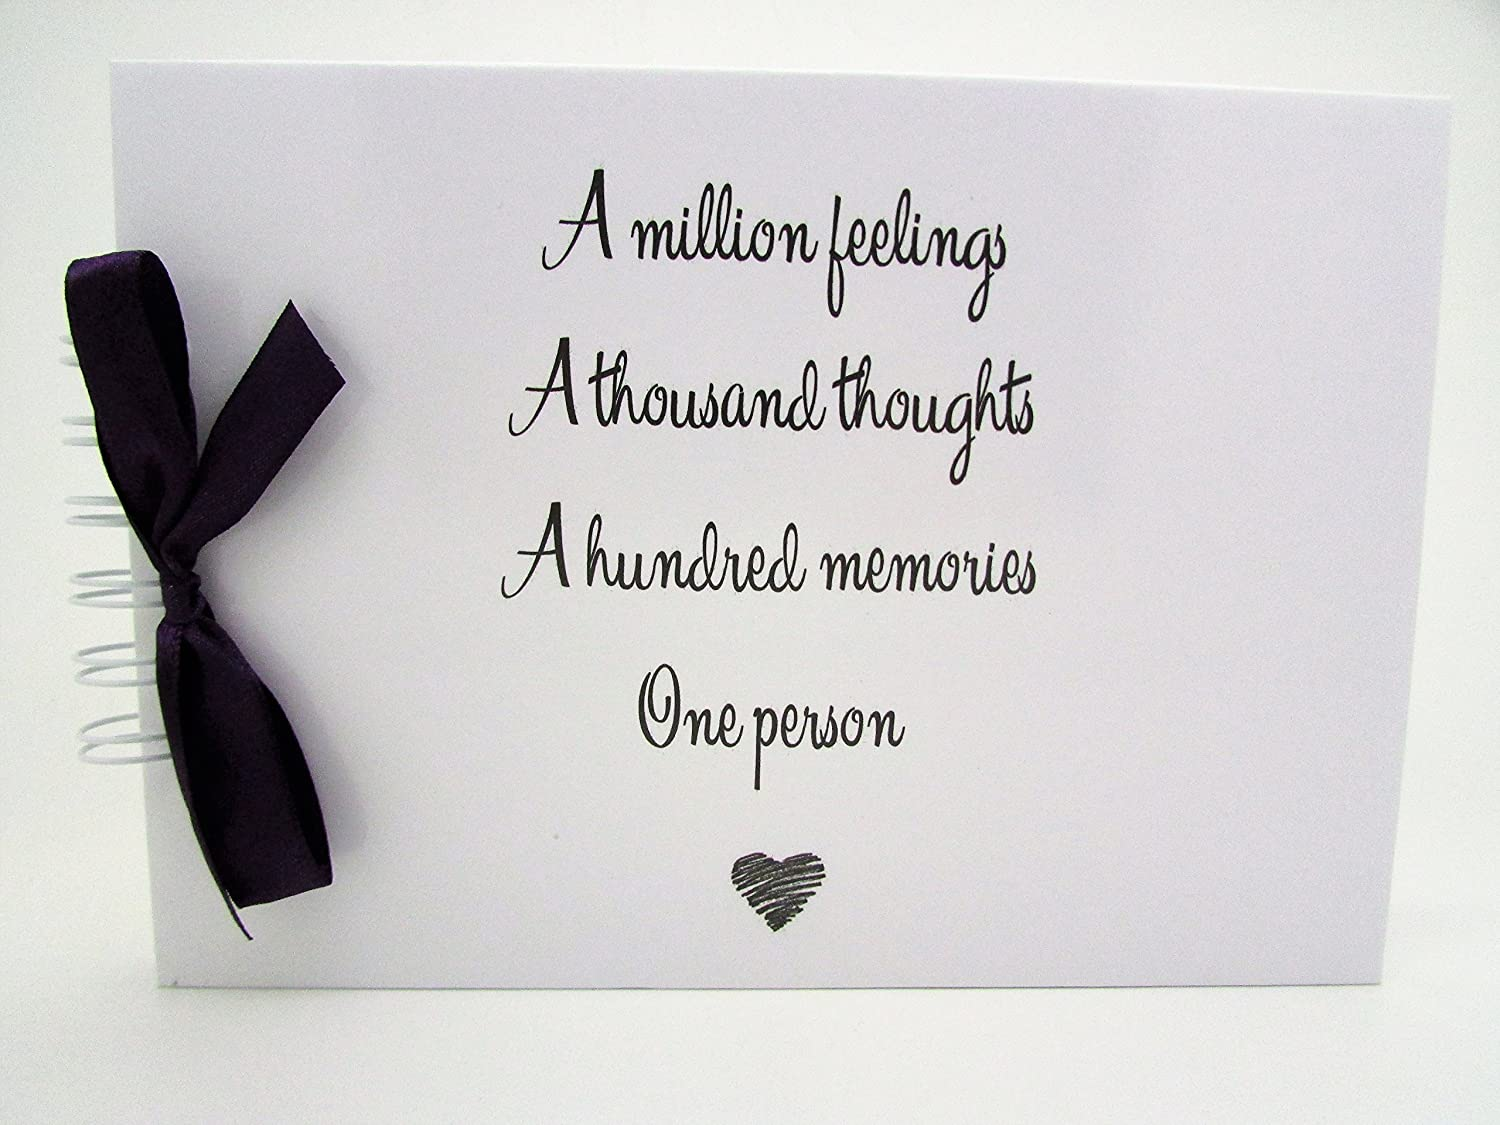 Any occasion QUOTE 'A MILLION FEELING THOUGHTS & MEMORIES MEMORY BOOK SCRAPBOOK ALBUM PRESENT GIFT